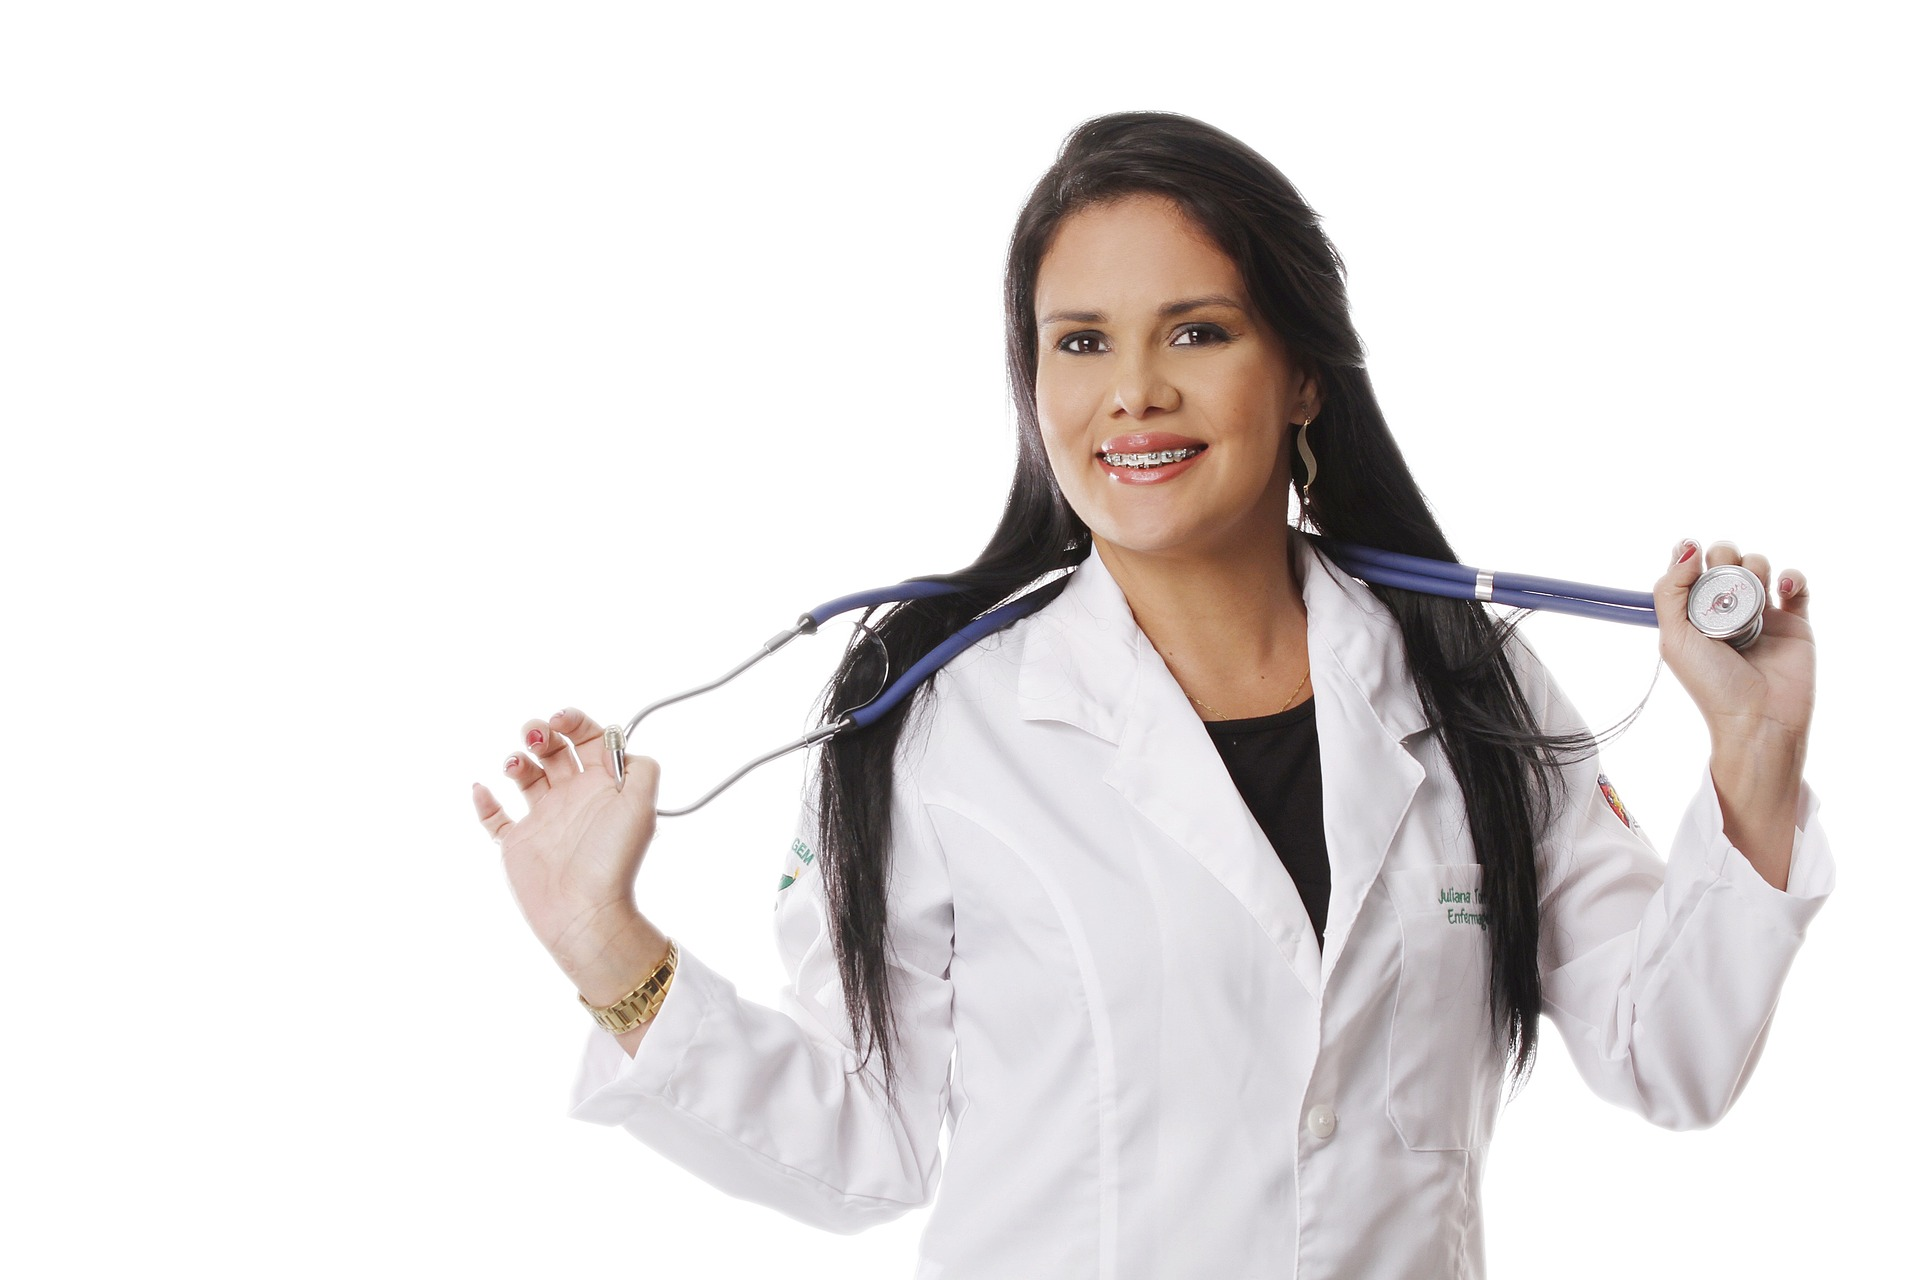 Why are Locum Tenens assignments Different for Doctors